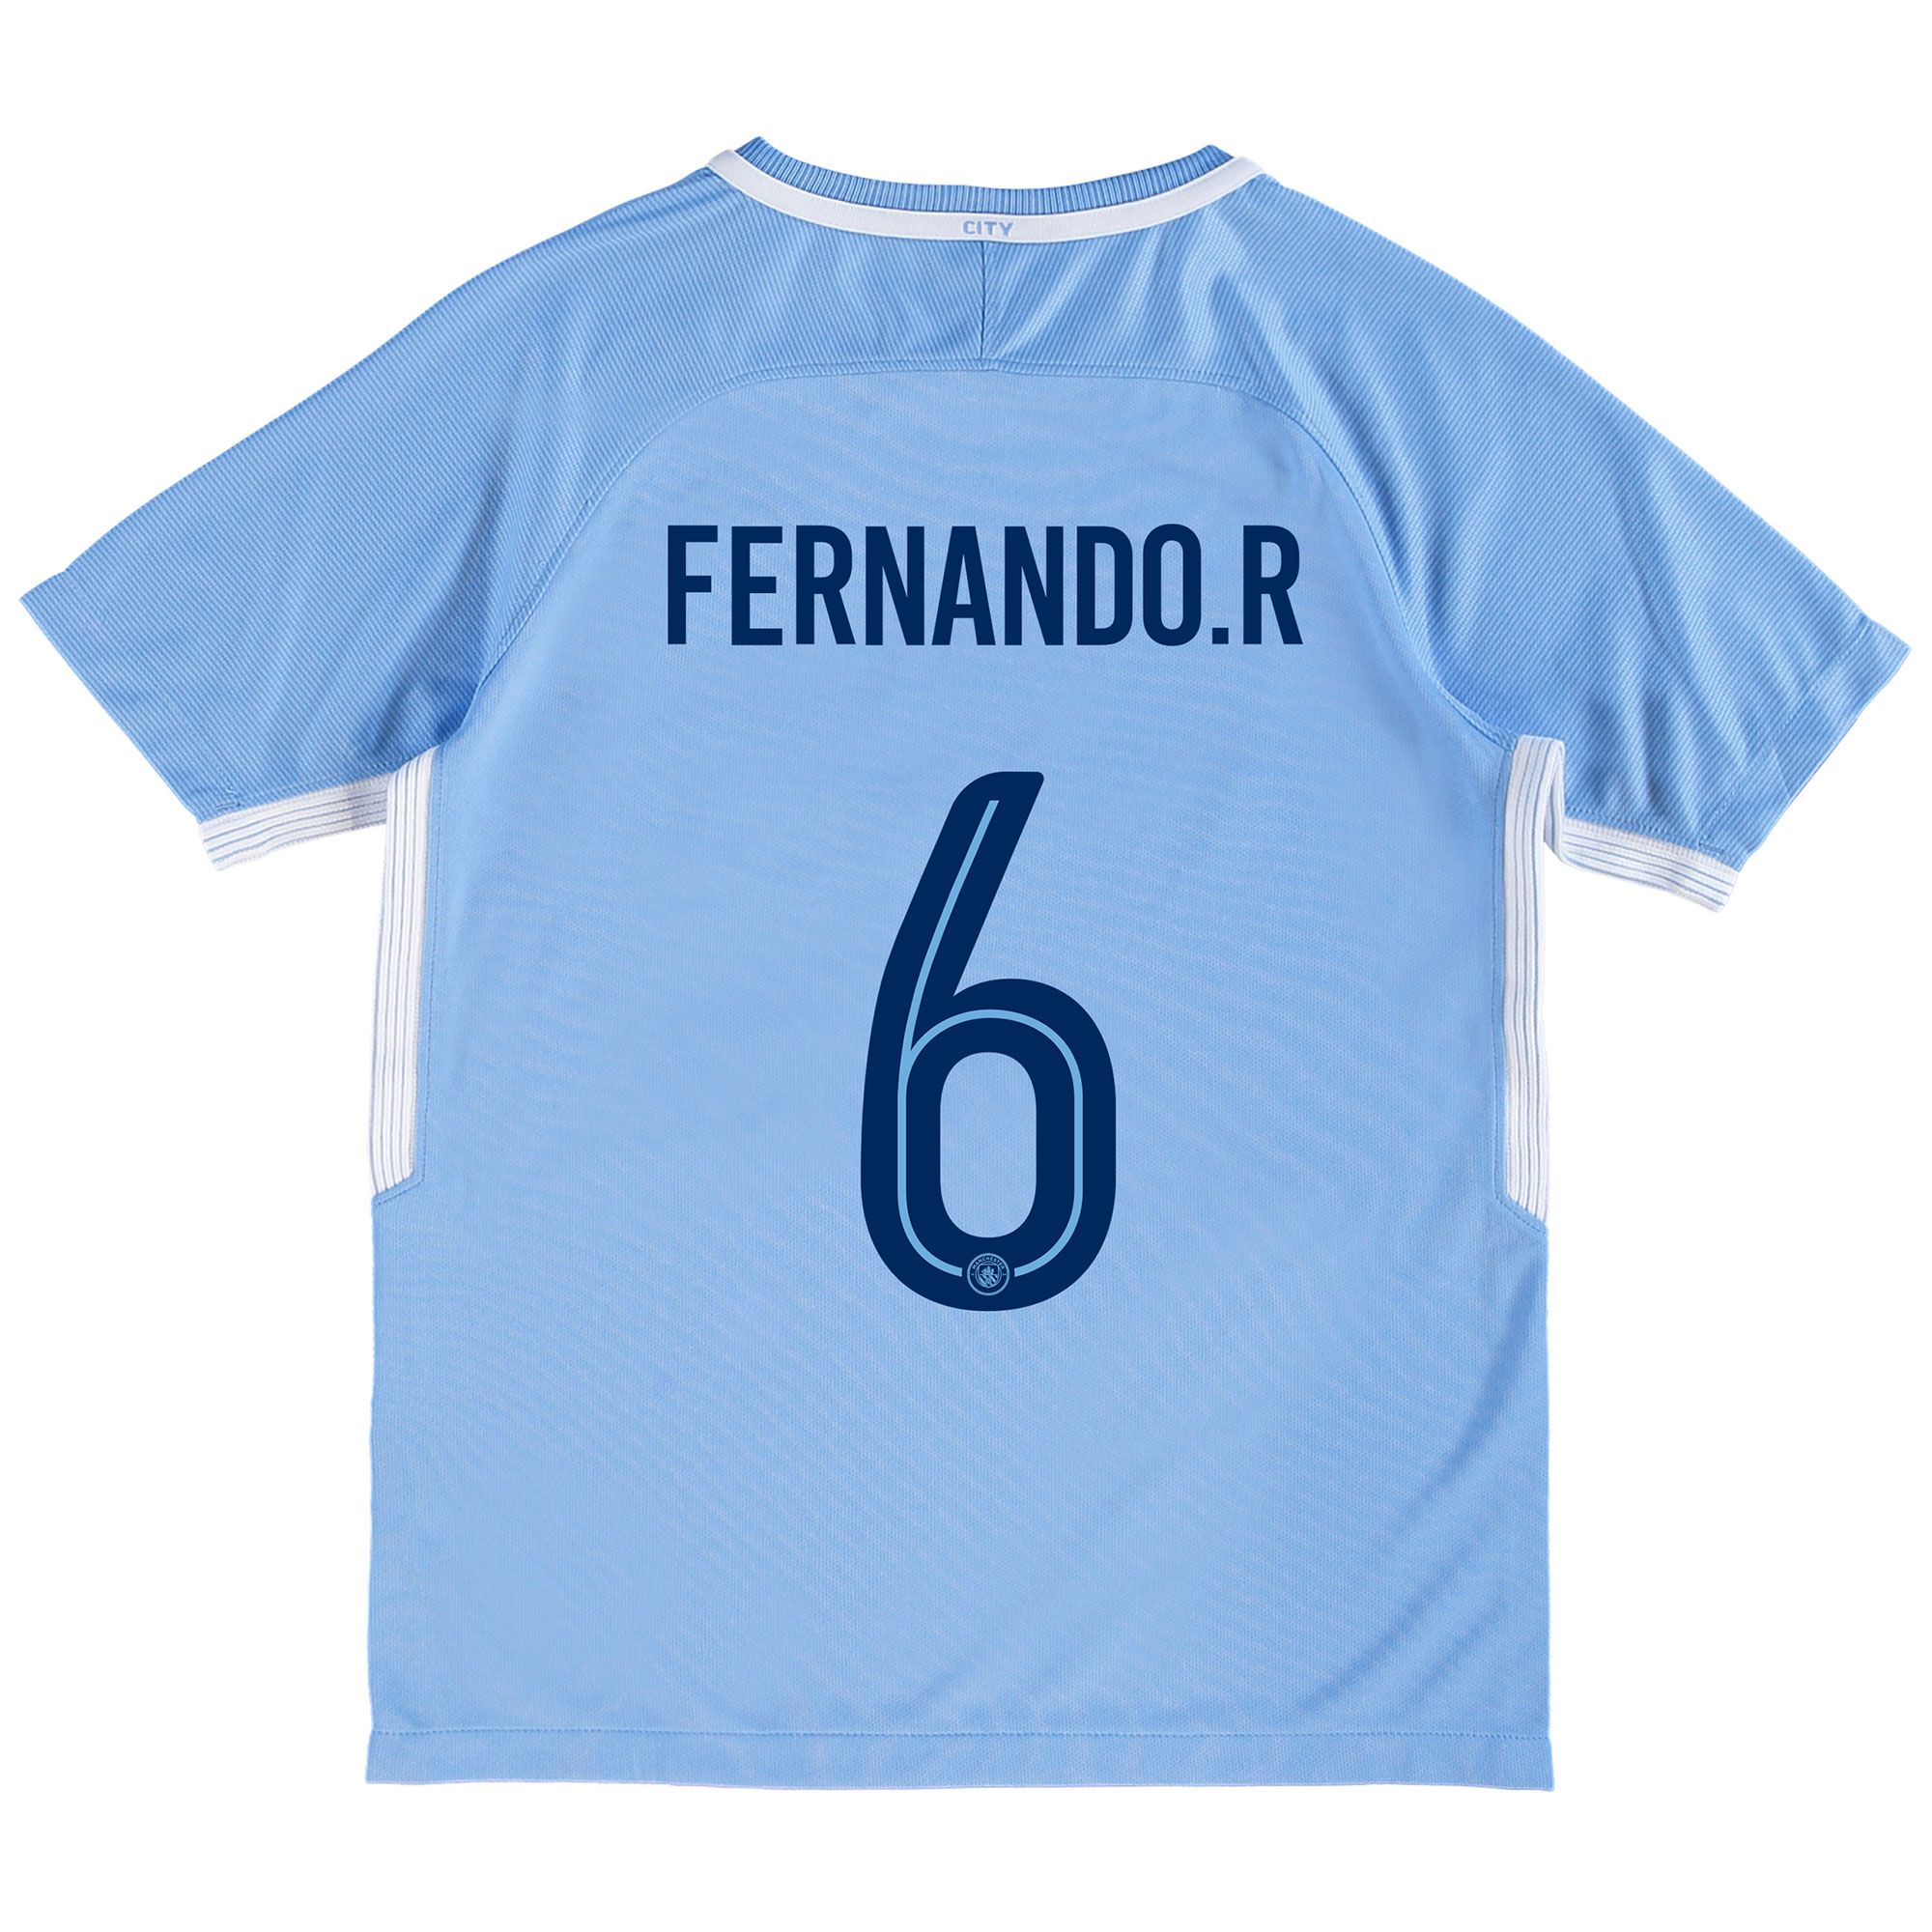 Manchester City Home Stadium Cup Shirt 2017-18 - Kids with Fernando. R